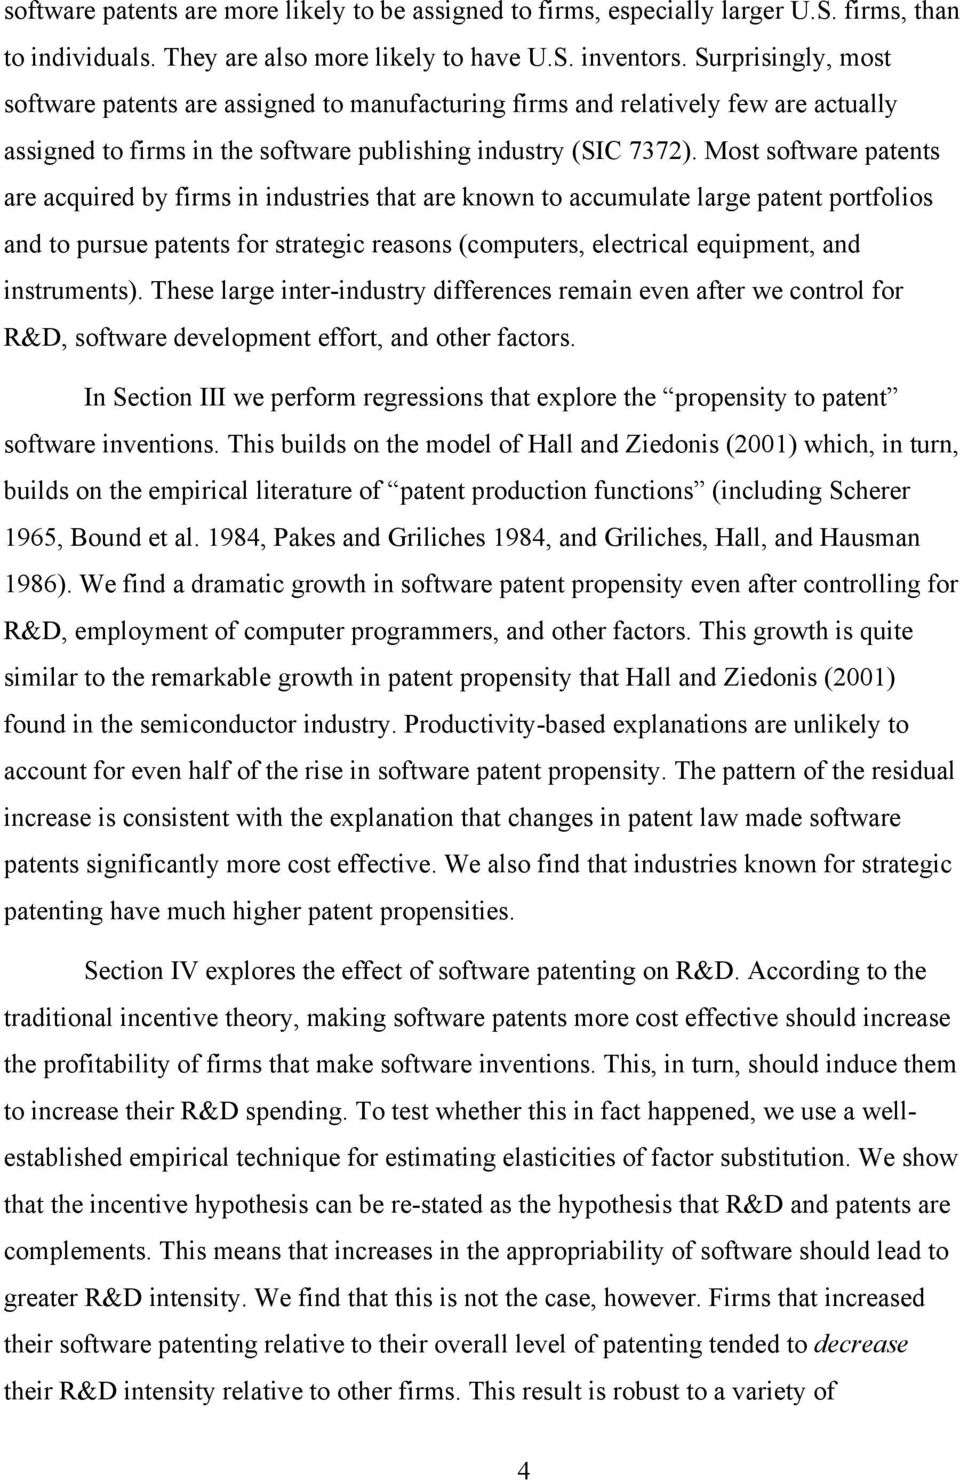 Most software patents are acquired by firms in industries that are known to accumulate large patent portfolios and to pursue patents for strategic reasons (computers, electrical equipment, and